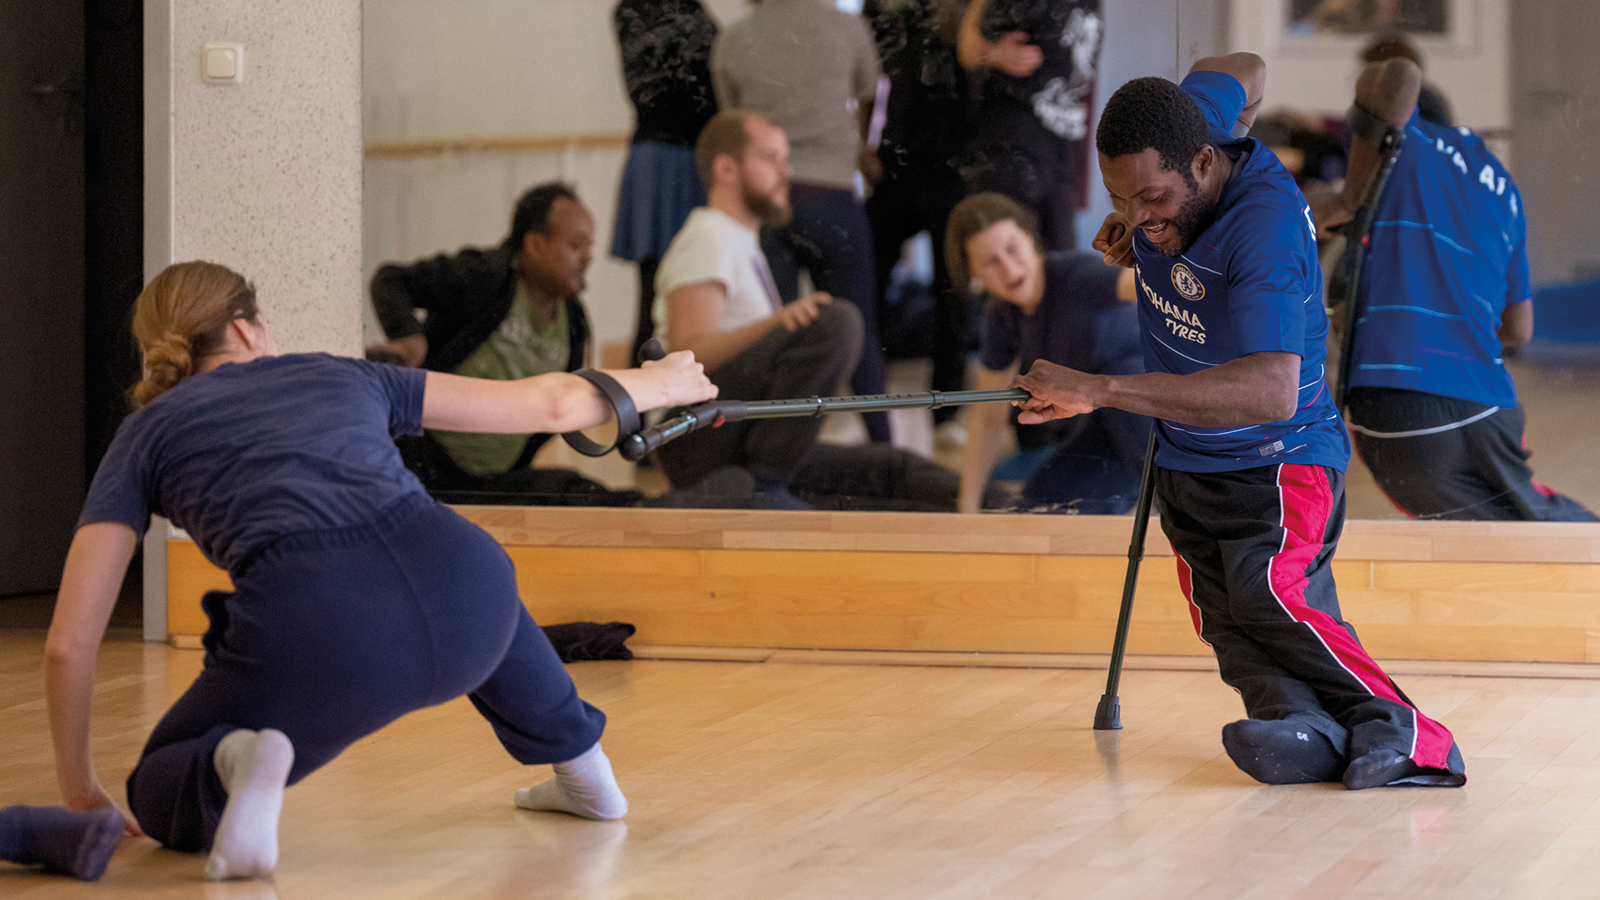 A black man and white woman take part in a dance masterclass using crutches